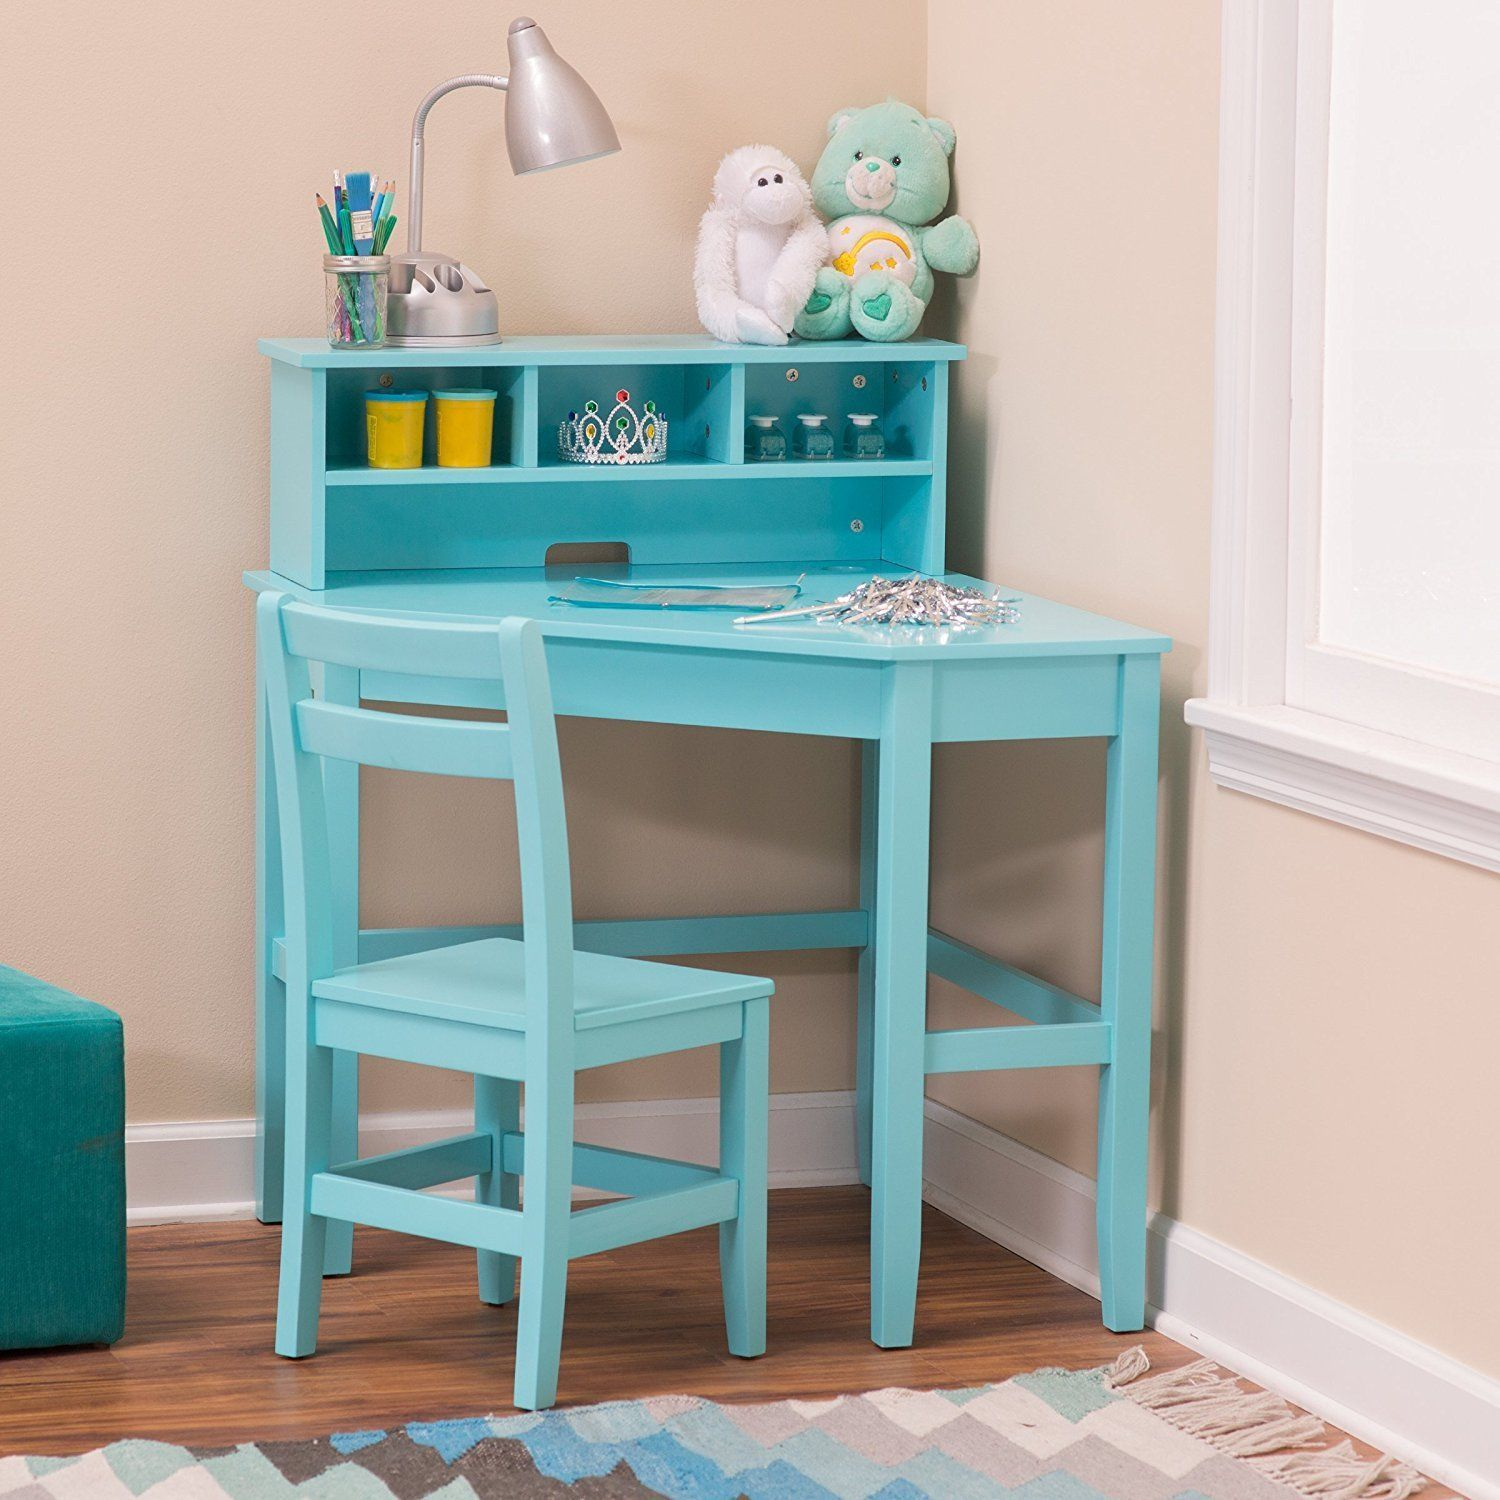 12 Smart Idea For An Empty Corner Decorating Your Room Kids Corner Desk Kid Desk Diy Kids Desk